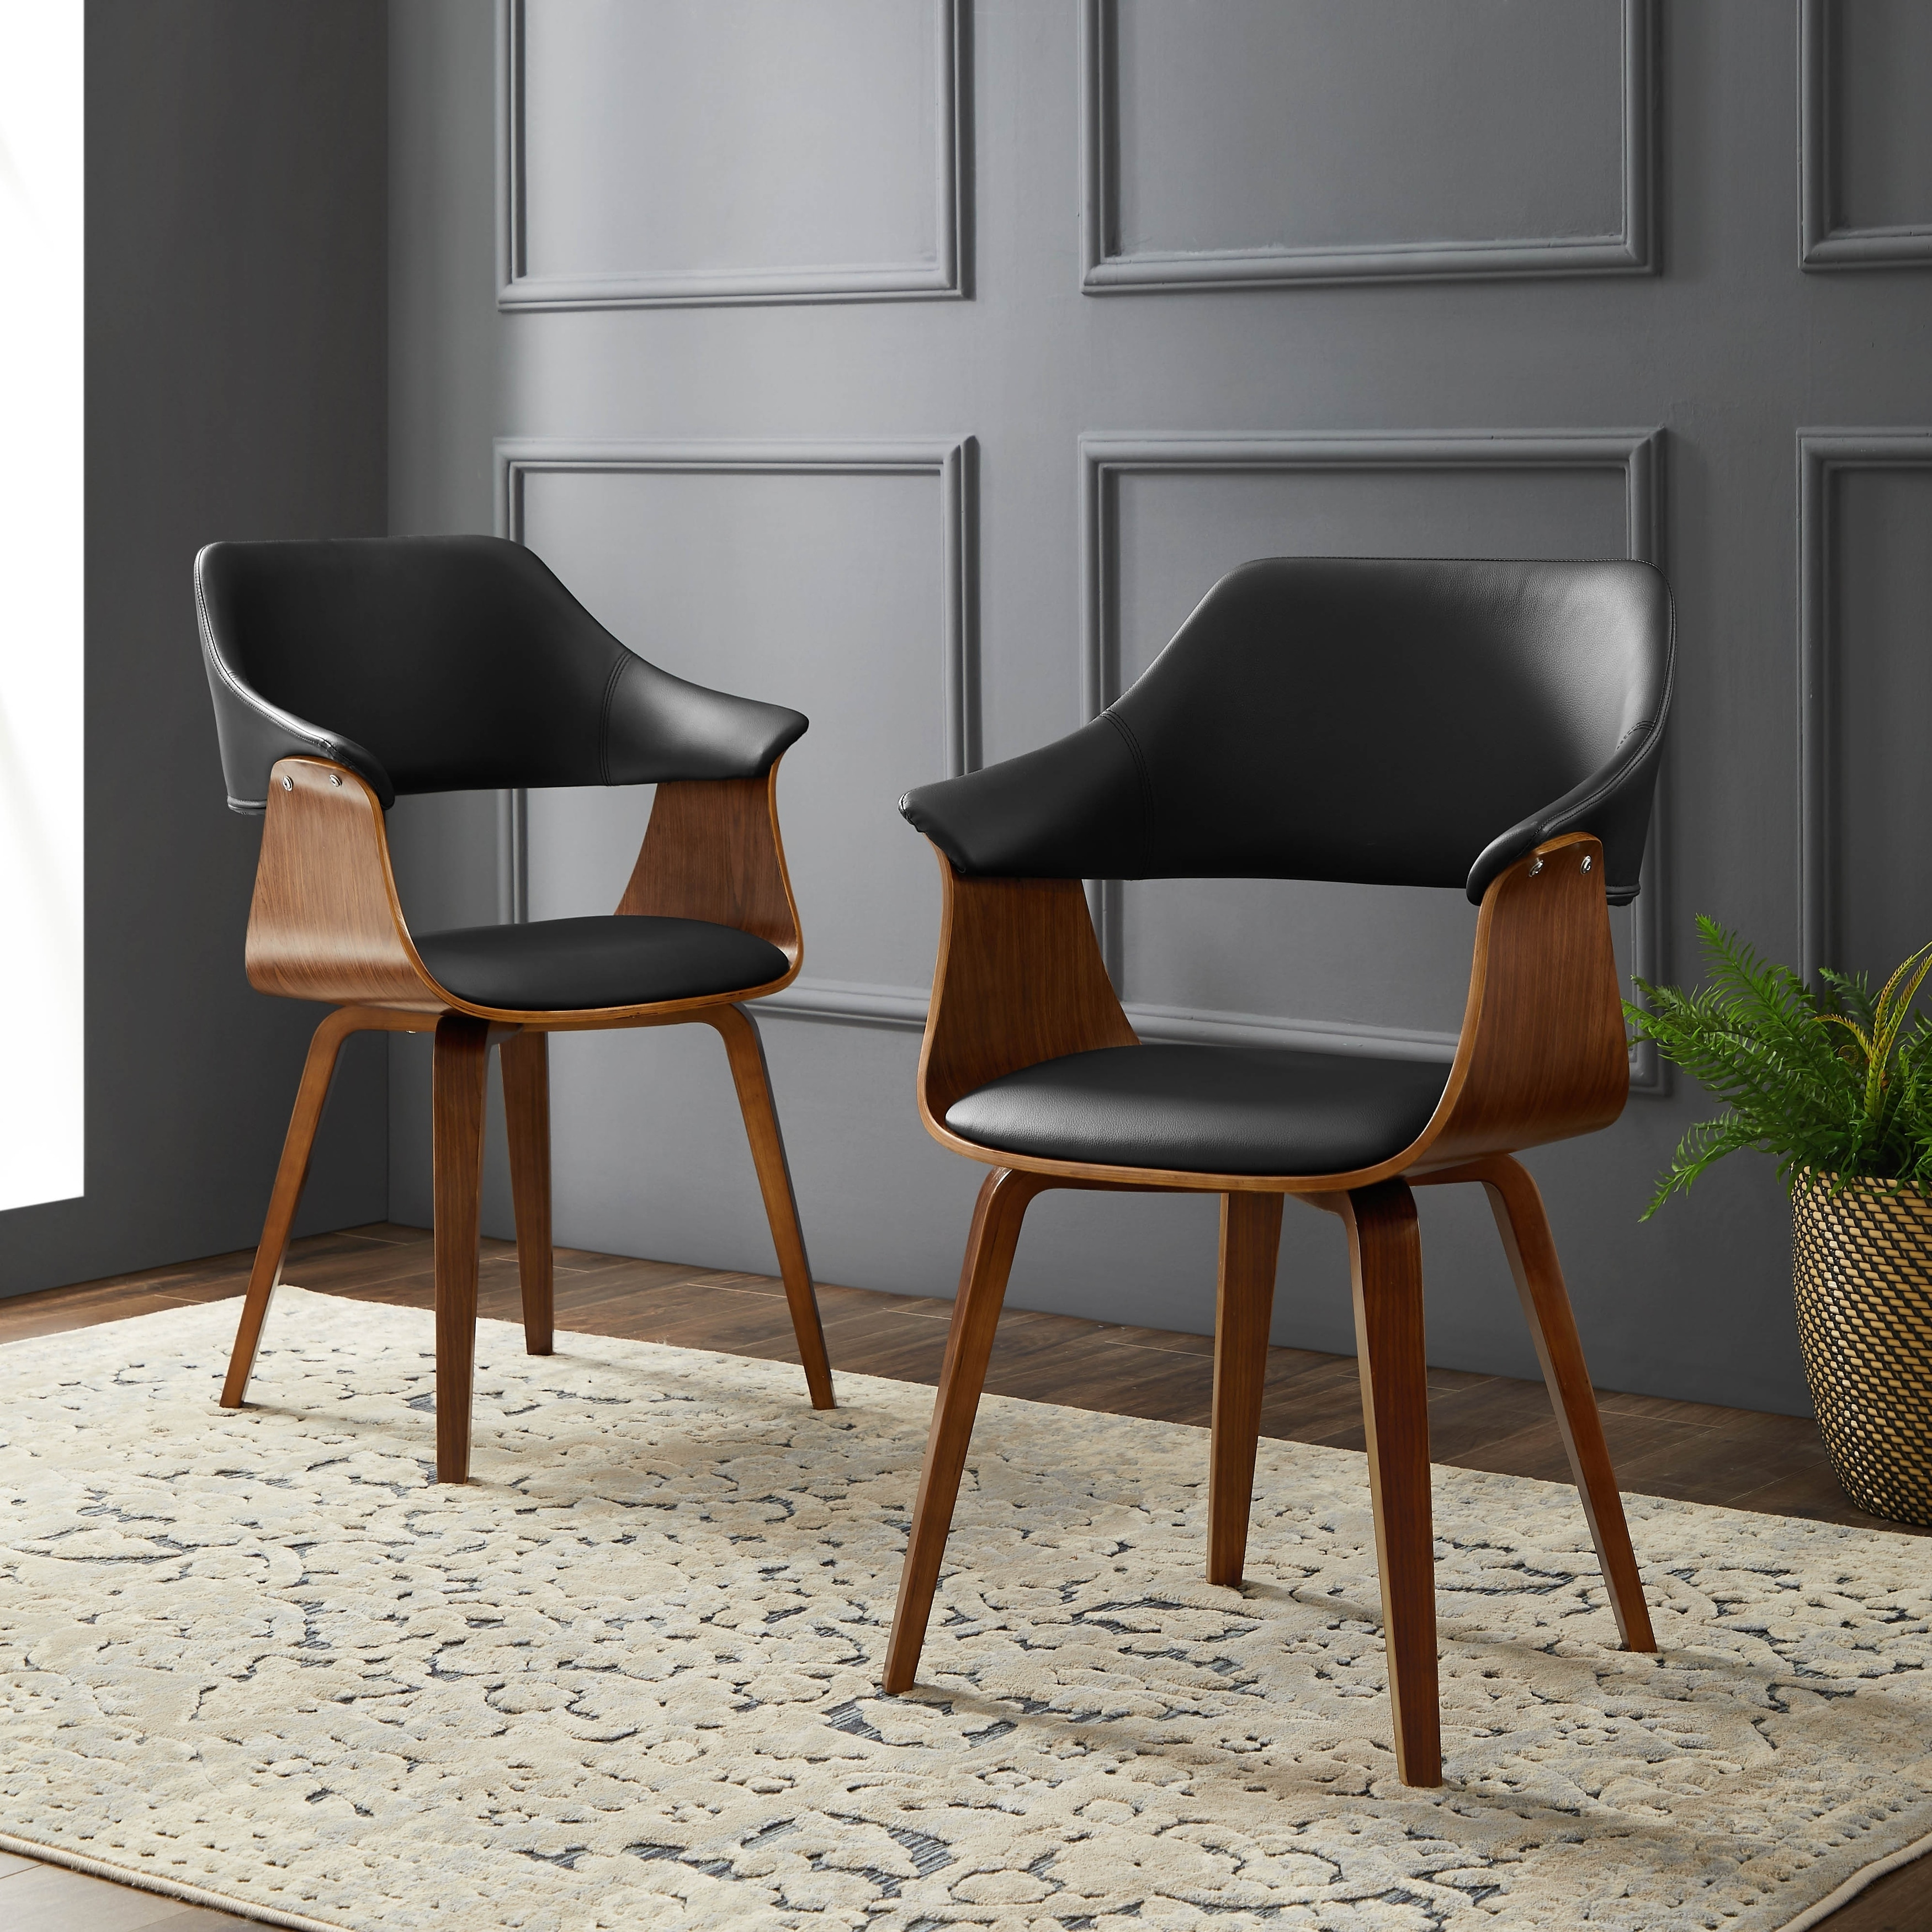 Corvus norah mid century modern accent chairs with